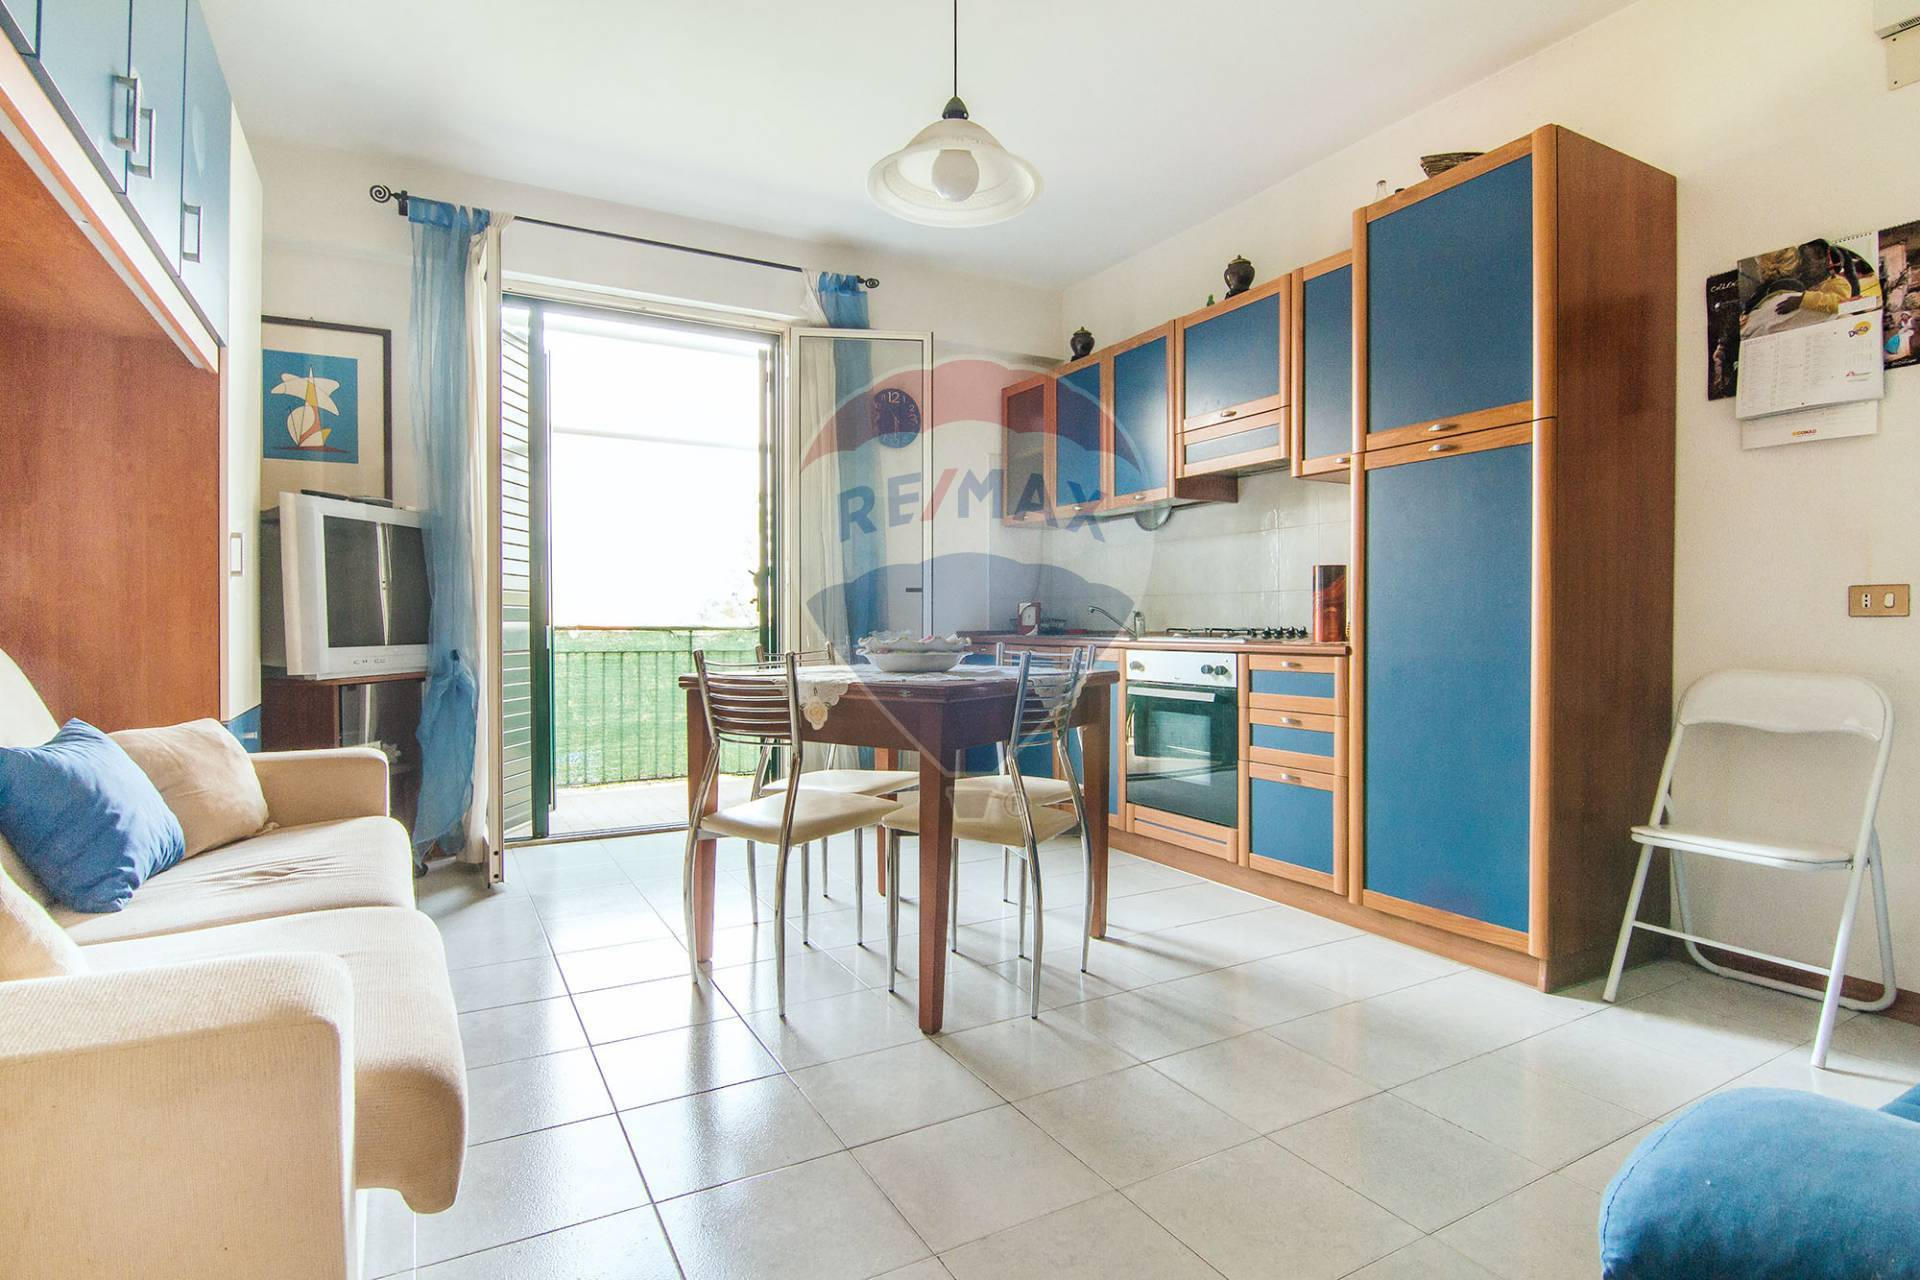 mascali vendita quart:  re/max city home